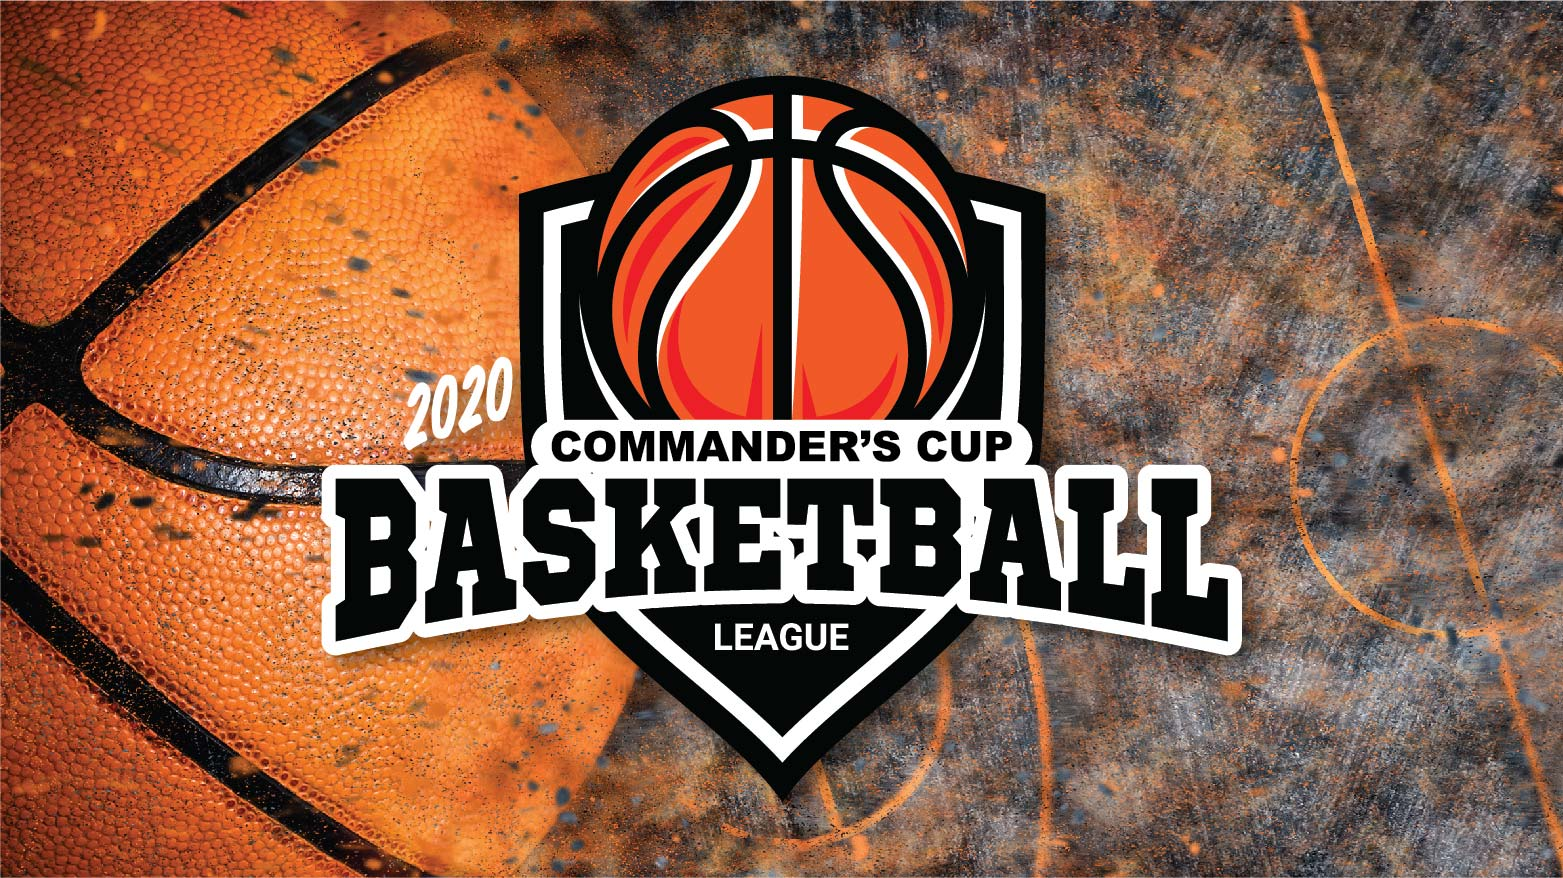 Commander's Cup Basketball League